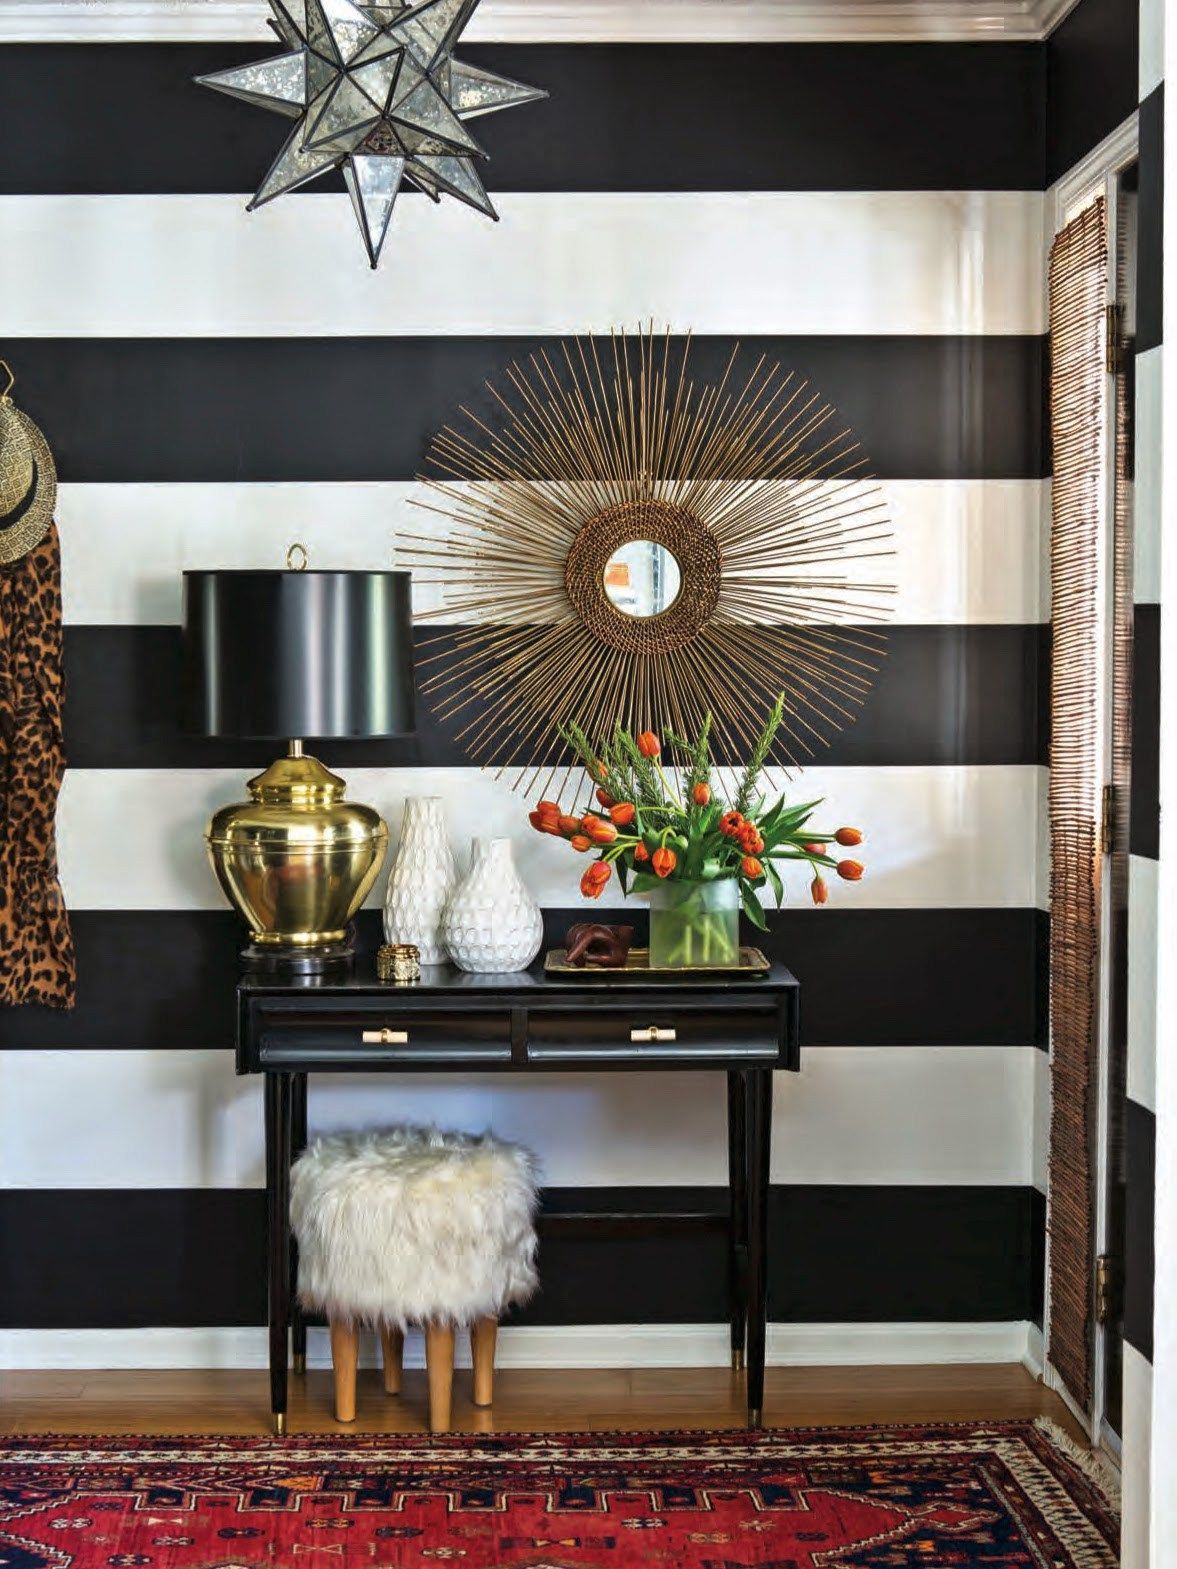 Dayka Robinson Designs Black & White Stripe Entry Home Tour Southern Lady Southern Home magazine